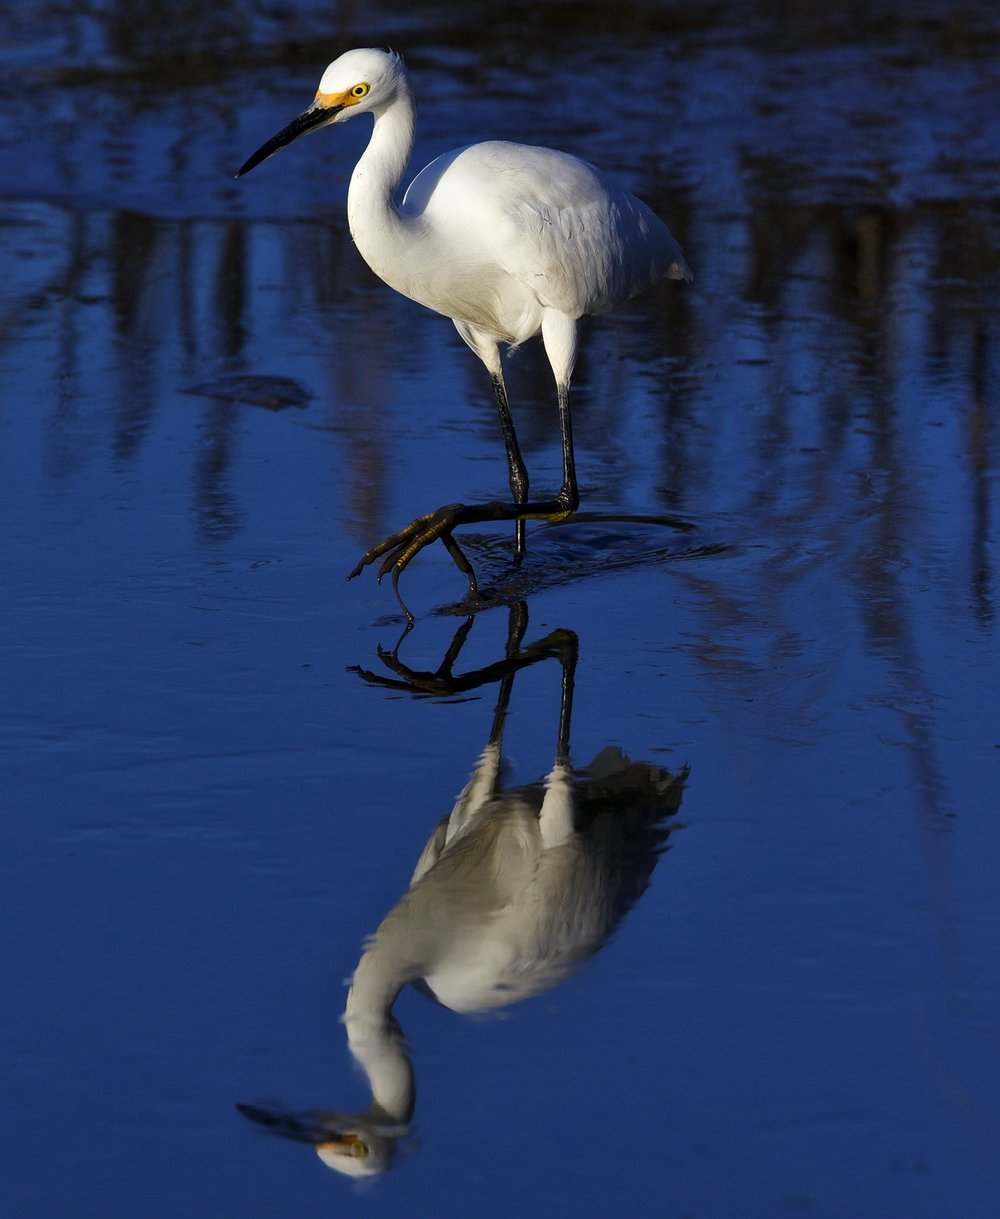 Snowy Egret complains I just had my nails done, now look at my muddy feet!